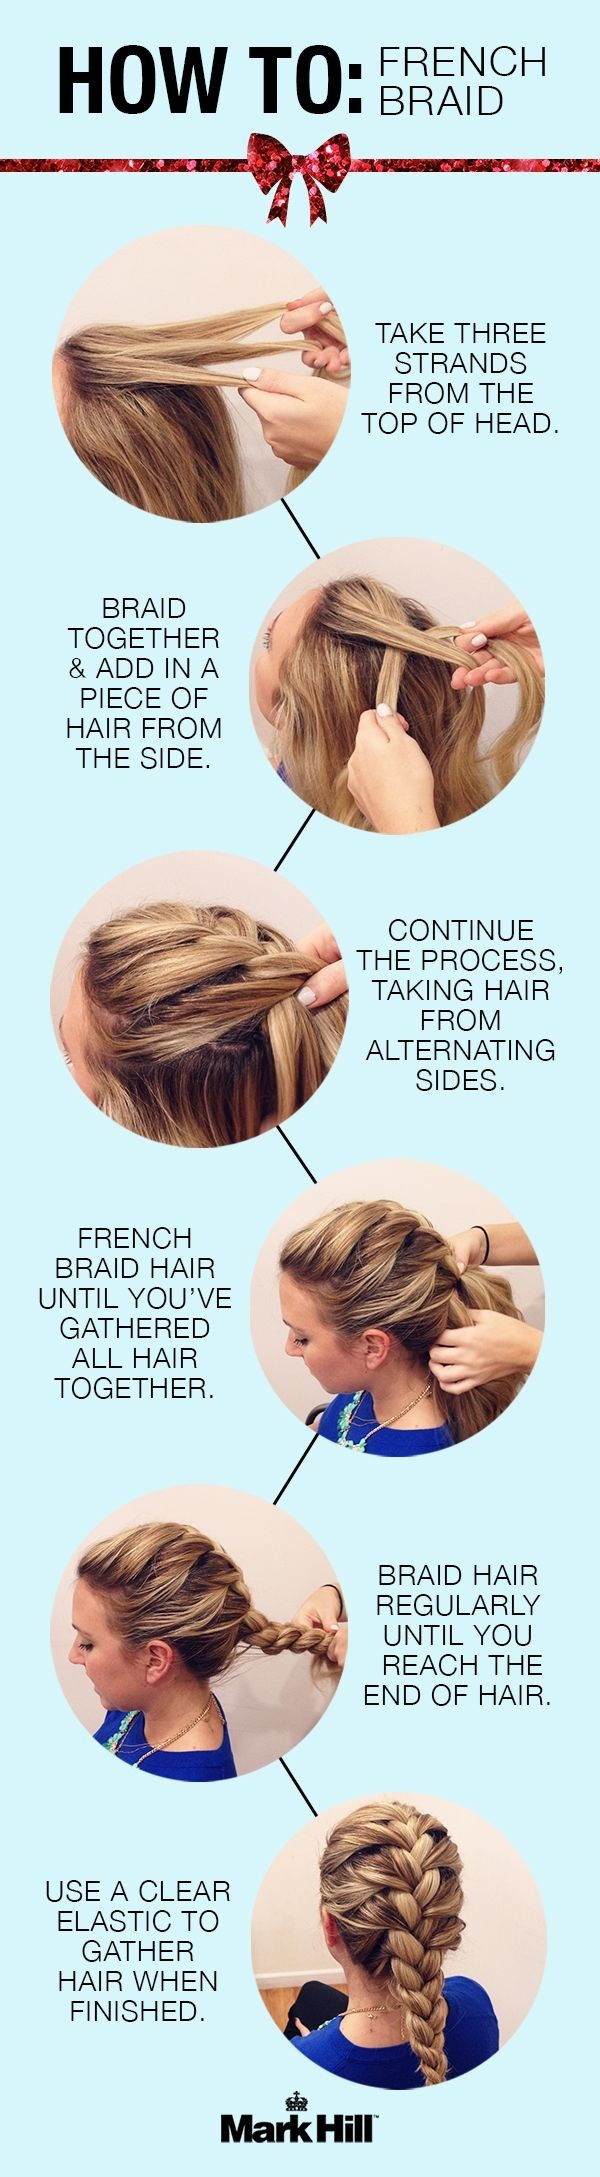 how to french braid own hair - photo #3